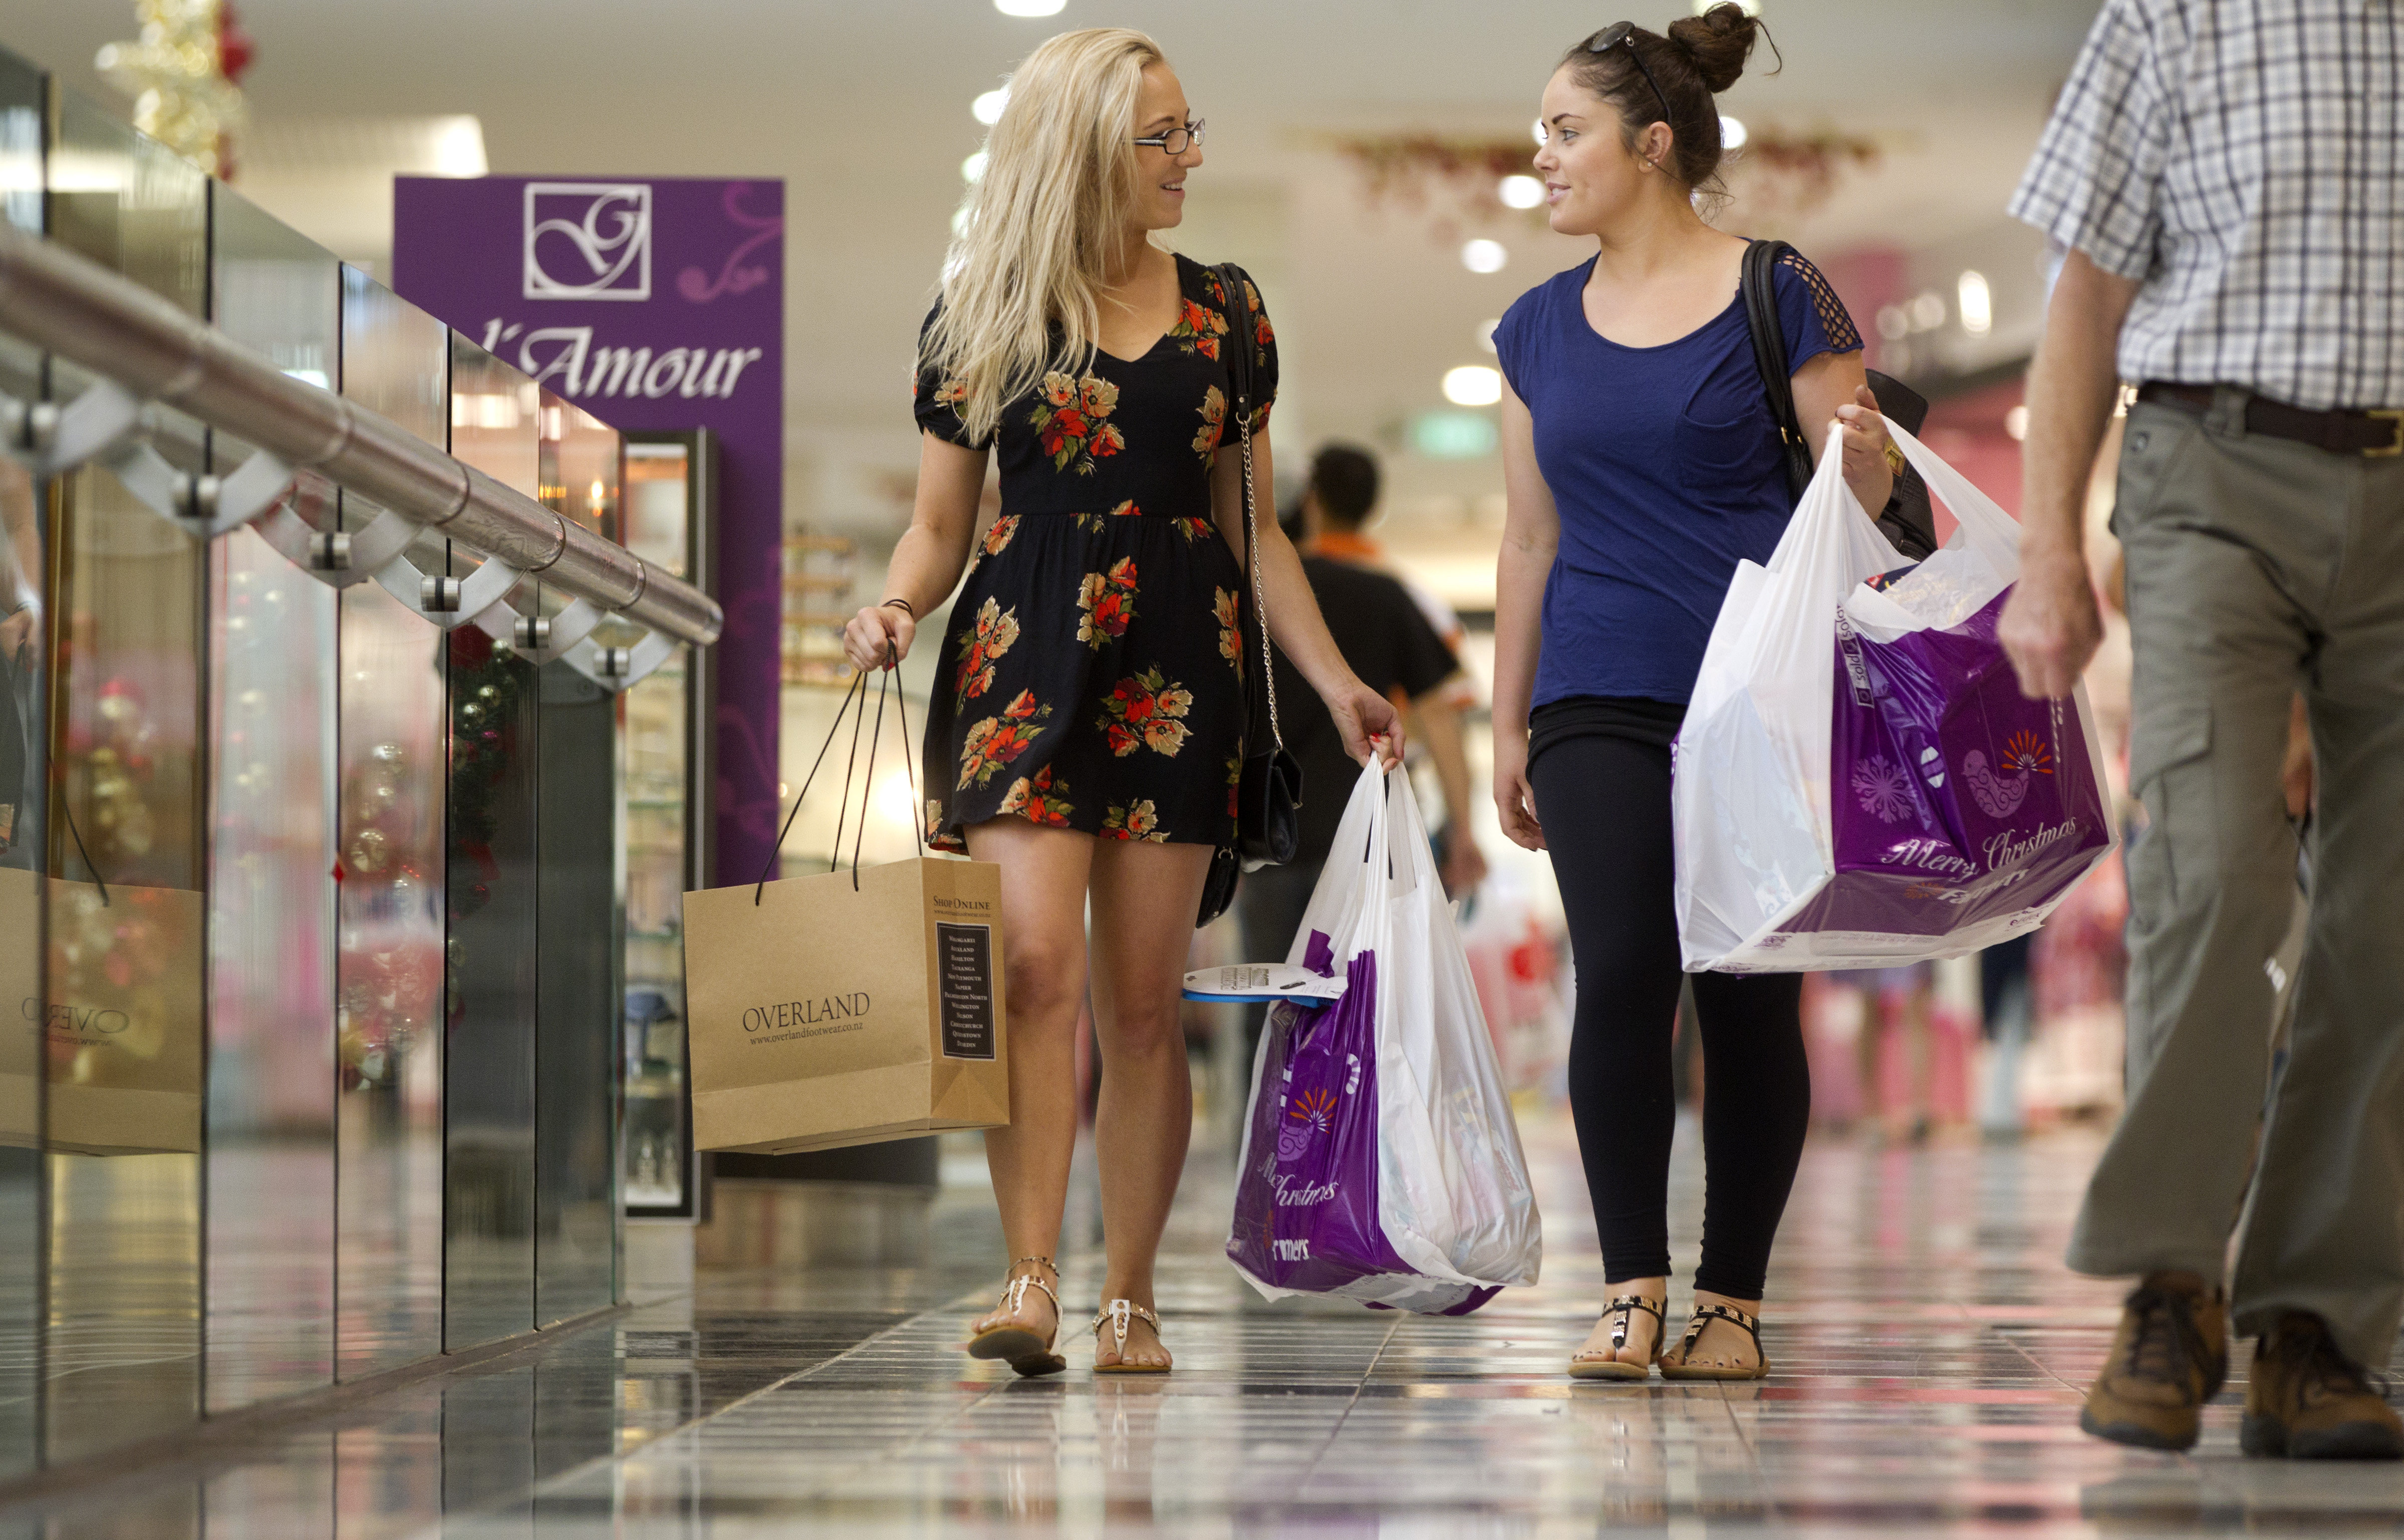 f49c680e8fe6 Where to find a shopping bargain in Auckland - NZ Herald